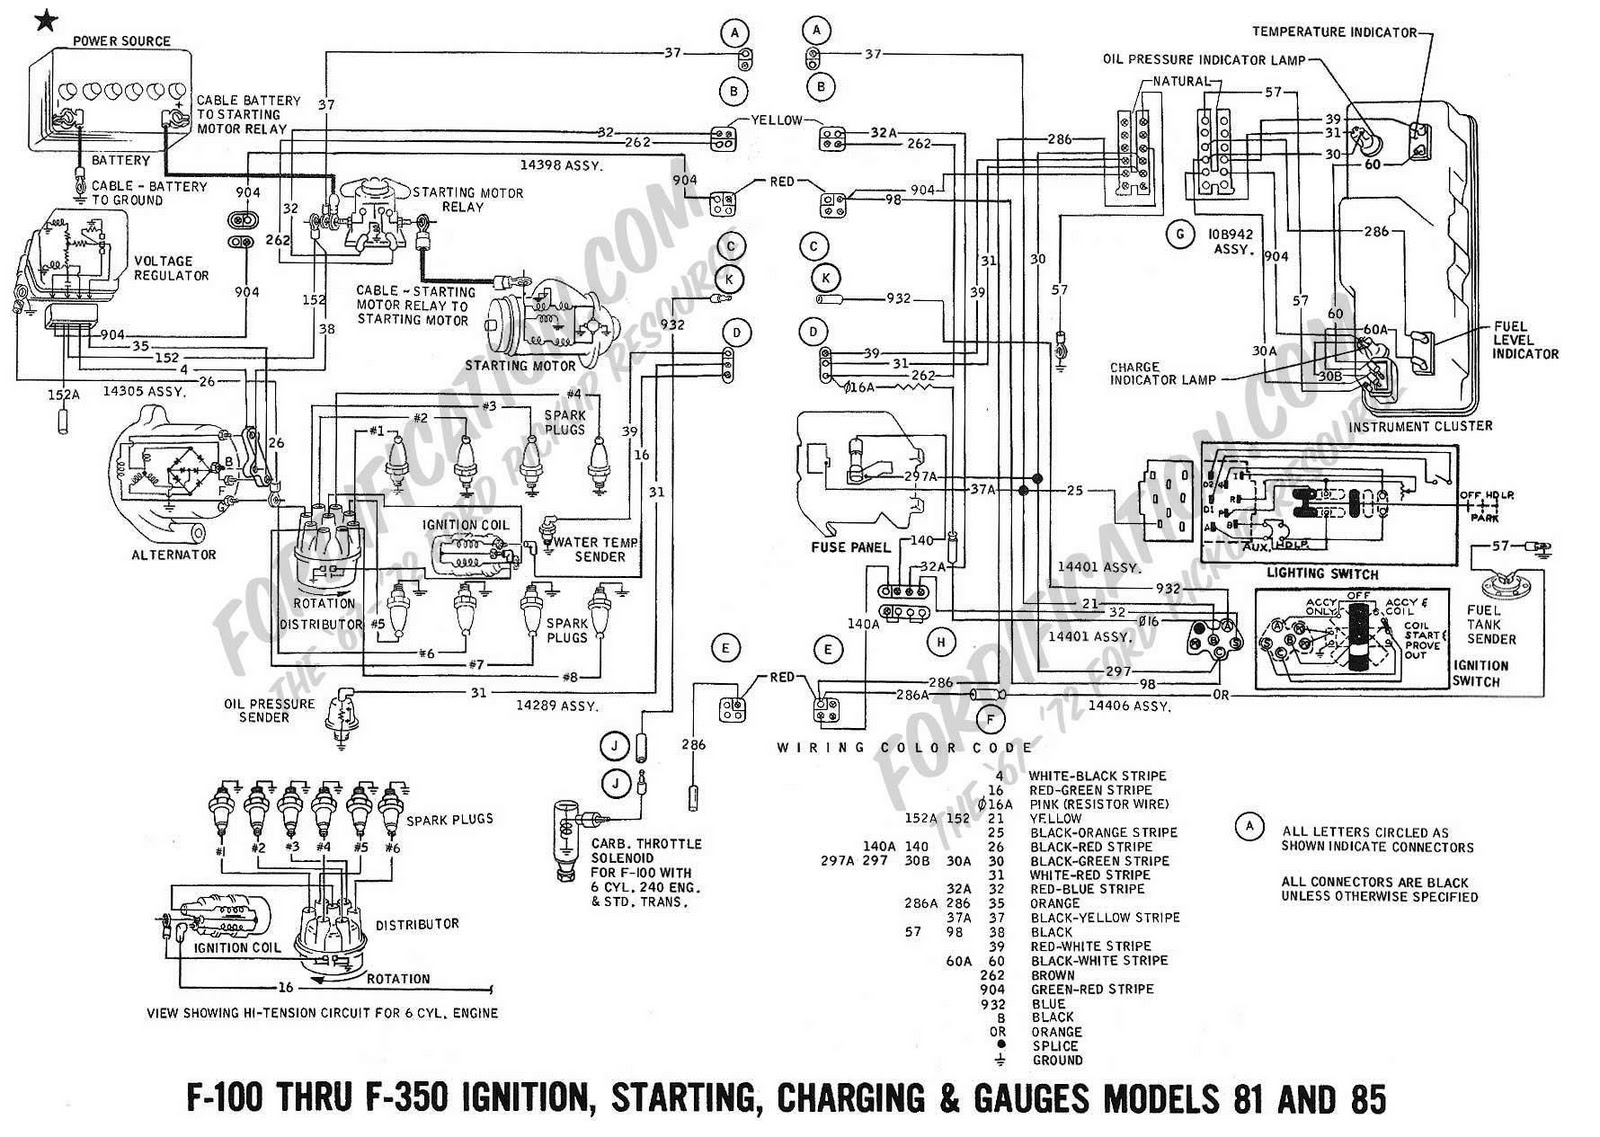 details about ford 1969 f100 f350 truck wiring diagram manual 69